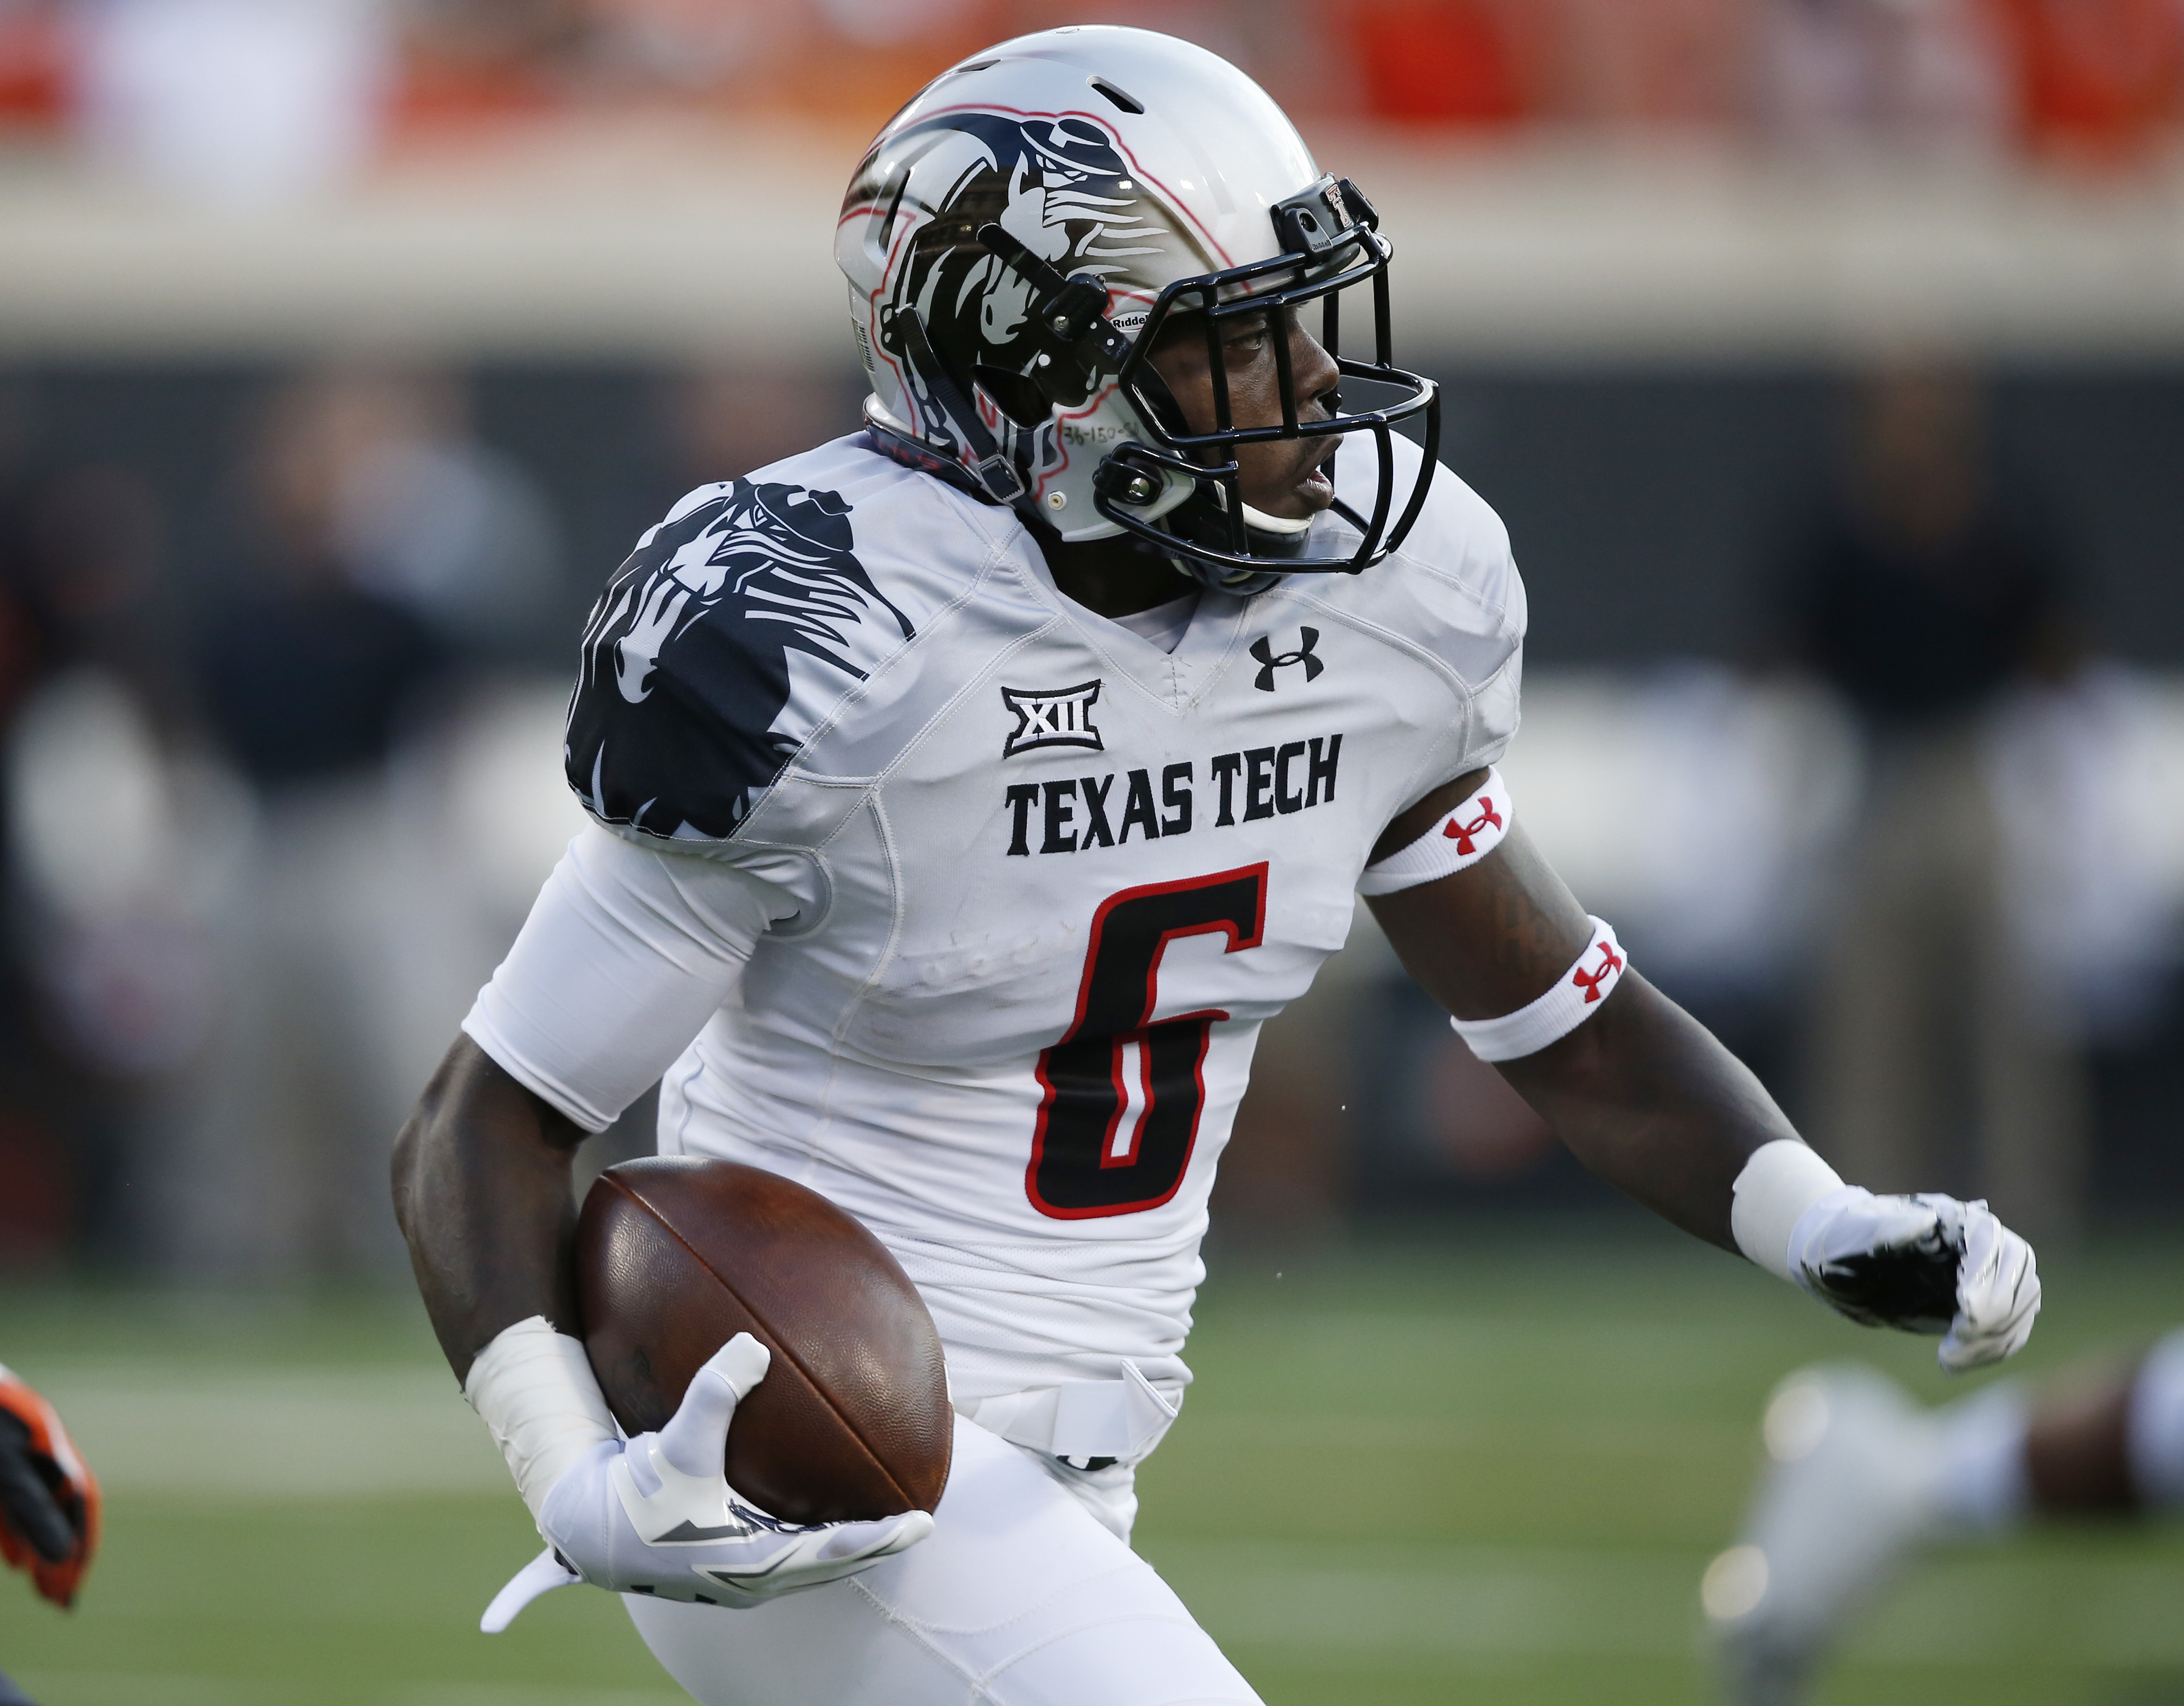 Texas Tech wide receiver Devin Lauderdale (6) is pictured during an NCAA college football game between Texas Tech and Oklahoma State in Stillwater, Okla., Thursday, Sept. 25, 2014. (AP Photo/Sue Ogrocki)